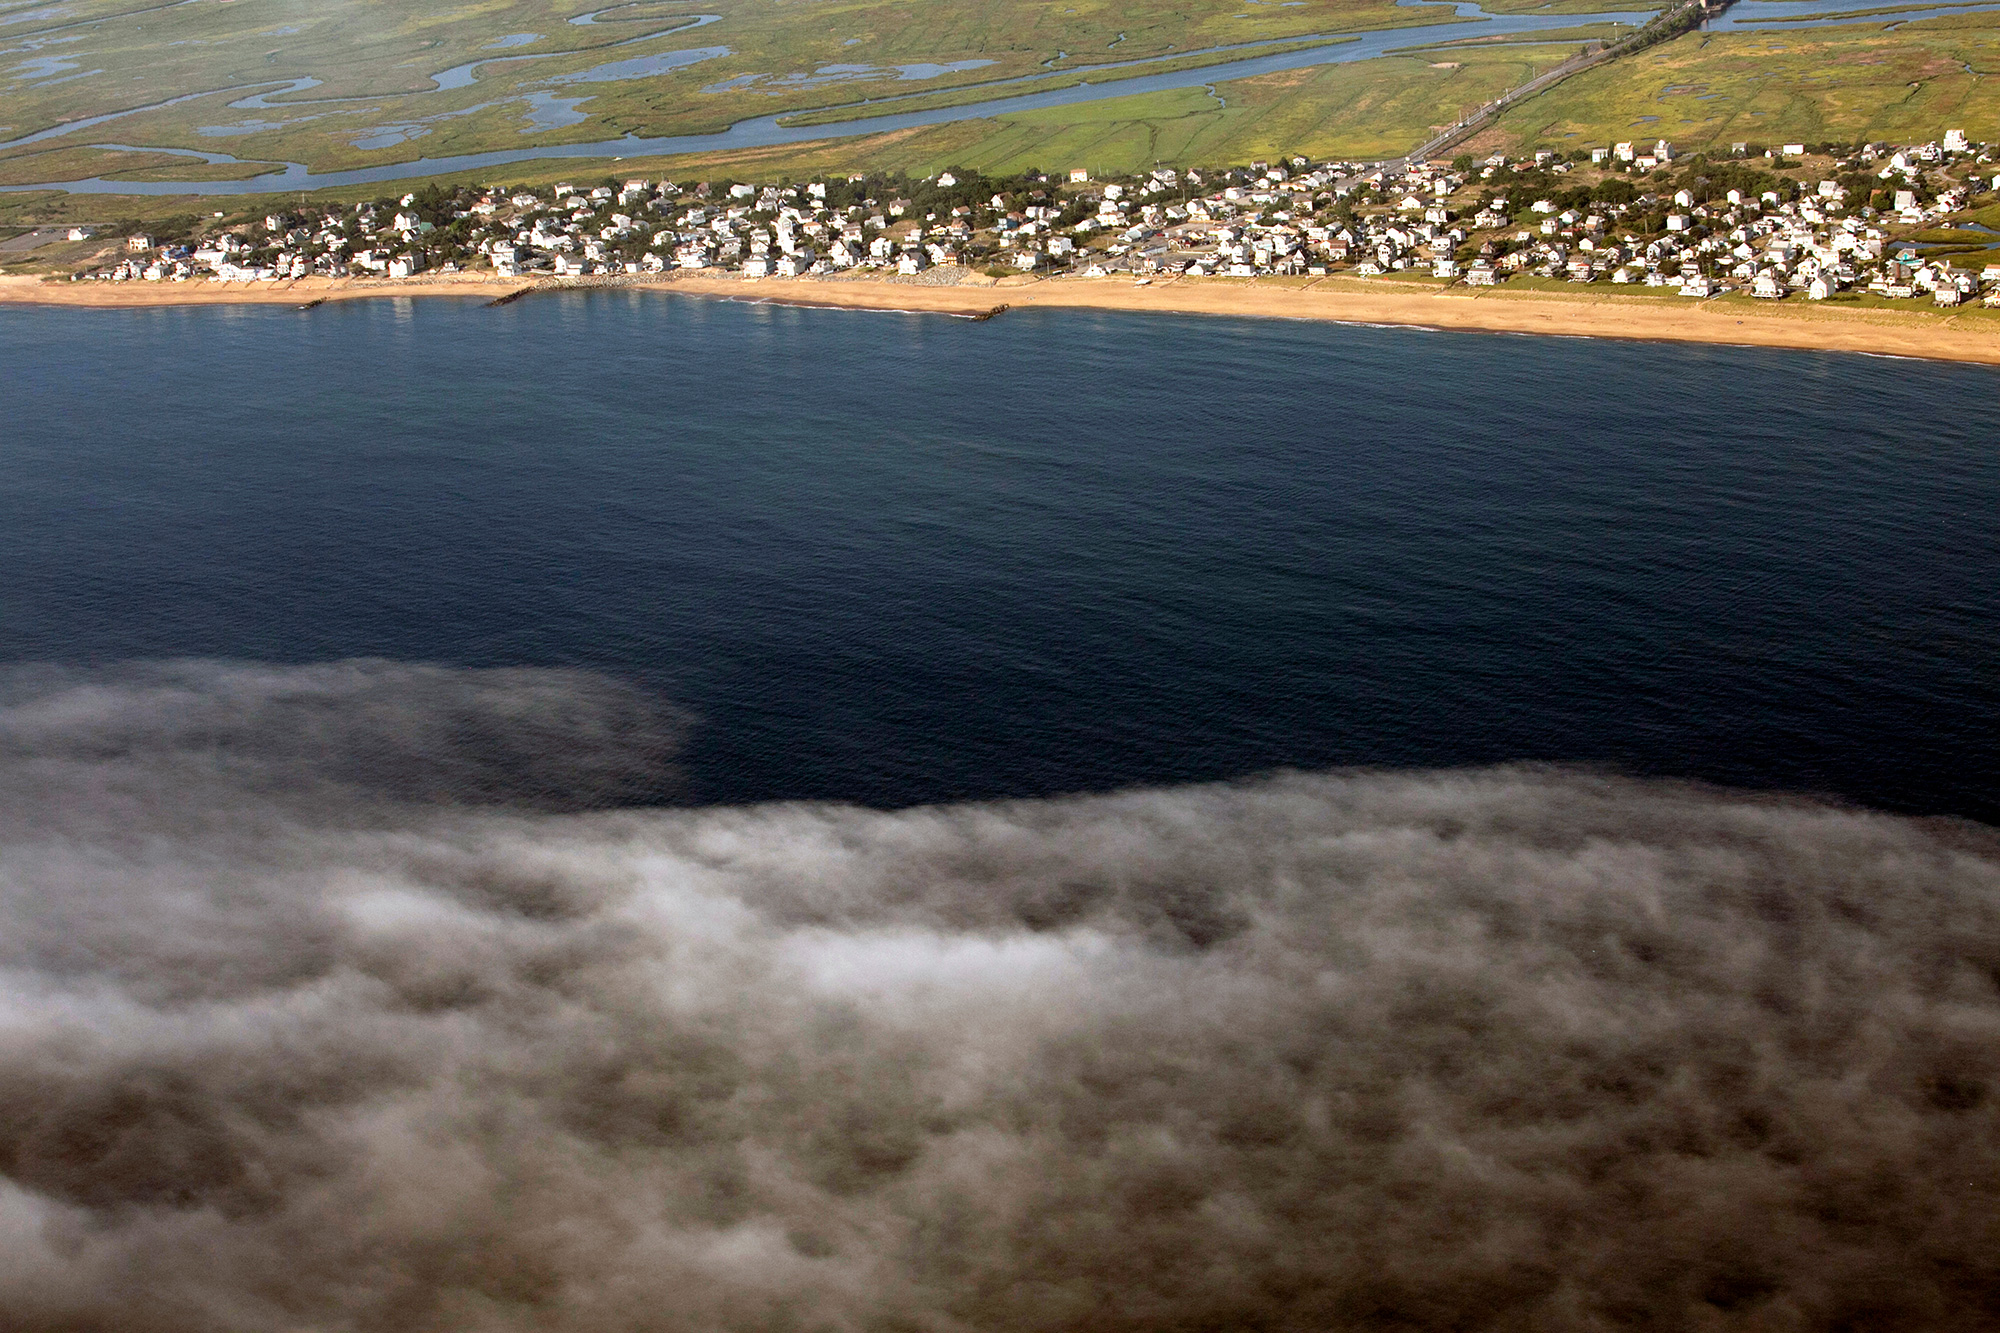 """Homes and businesses on Plum Island come face-to-face with the Atlantic Ocean. """"The big problem with climate change and sea level rise is that it's a slow motion disaster and people don't really perceive that it's happening,"""" says Mike Morris of Storm Surge, a nonprofit organization in nearby Newburyport that helps communities prepare for the effects of climate change. (Photo by Lauren Owens Lambert/GroundTruth)"""